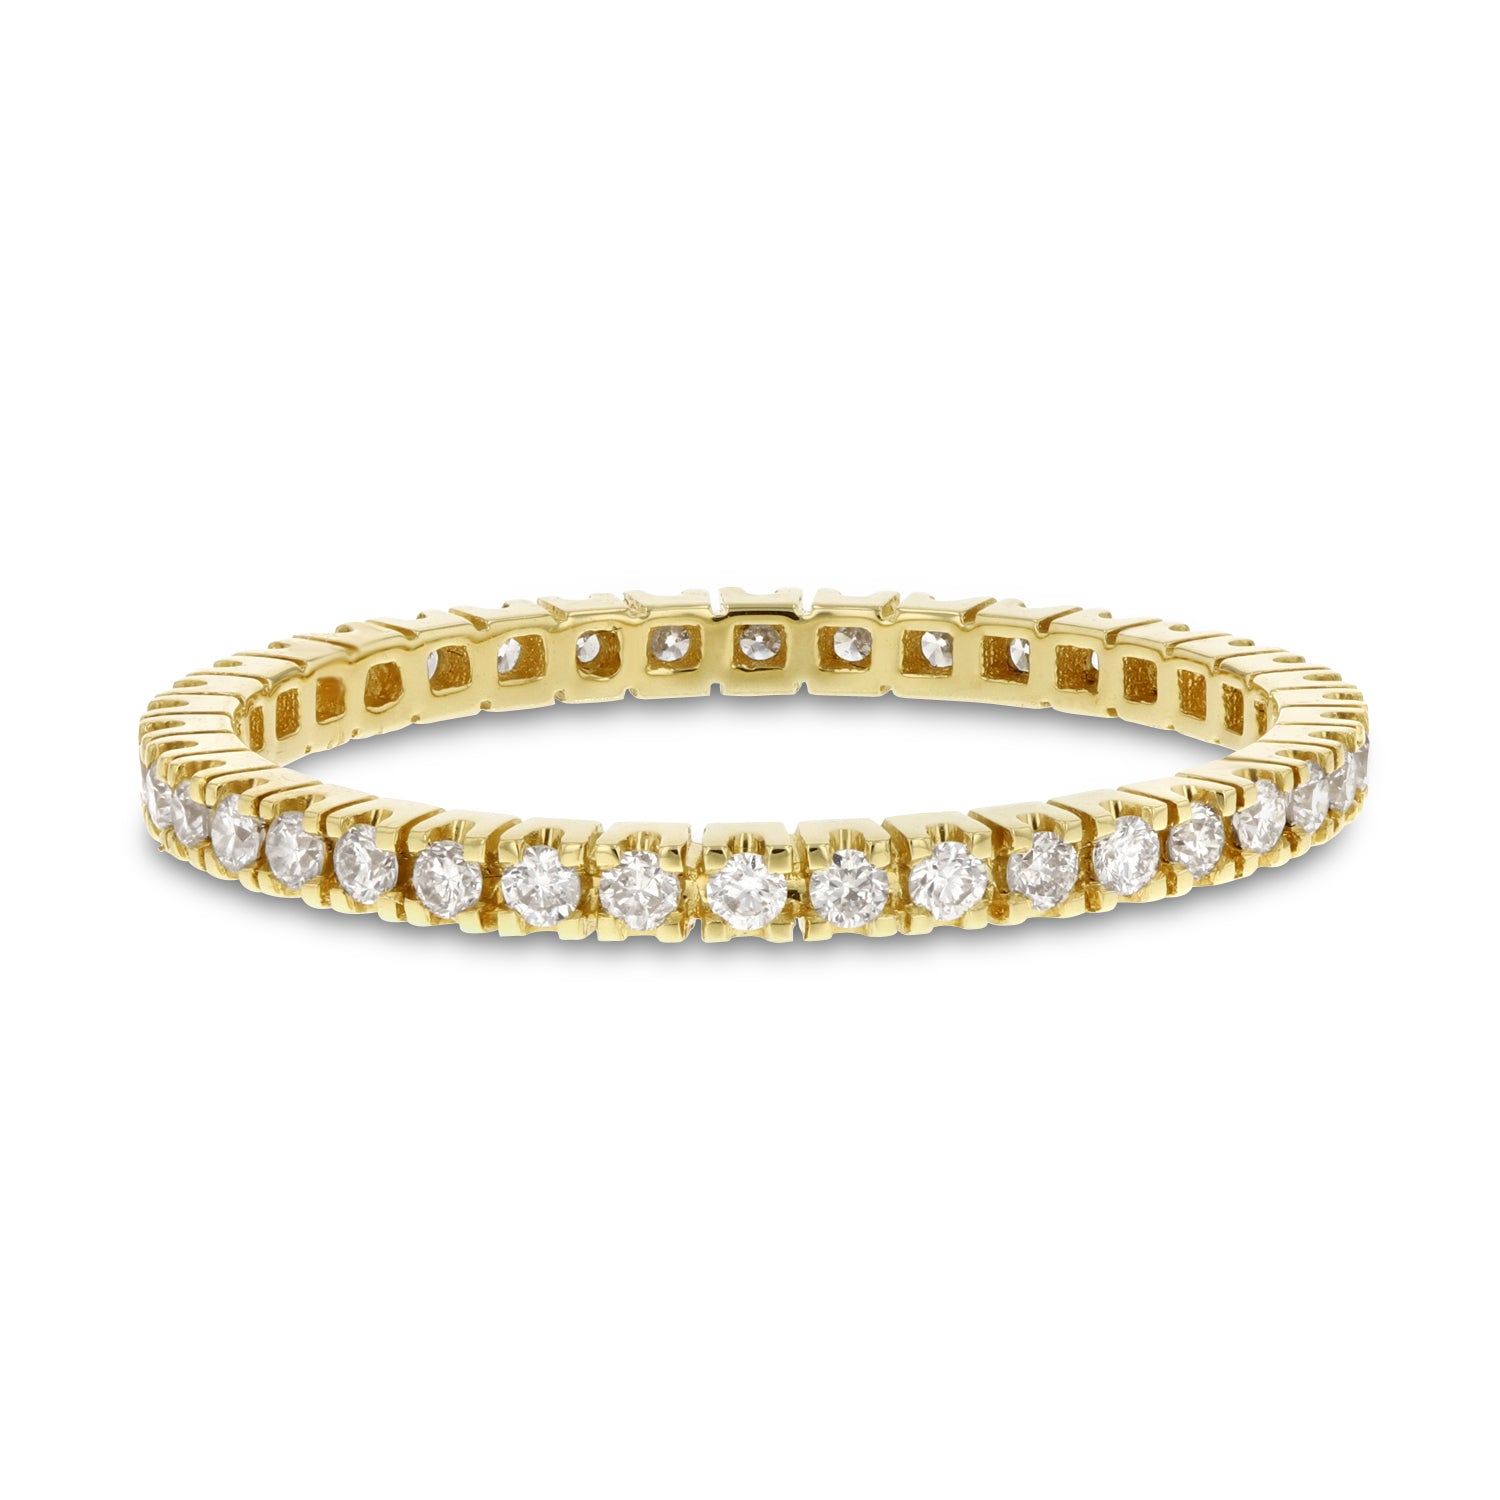 18K Yellow Gold Diamond Wedding Band, 0.35 Carats